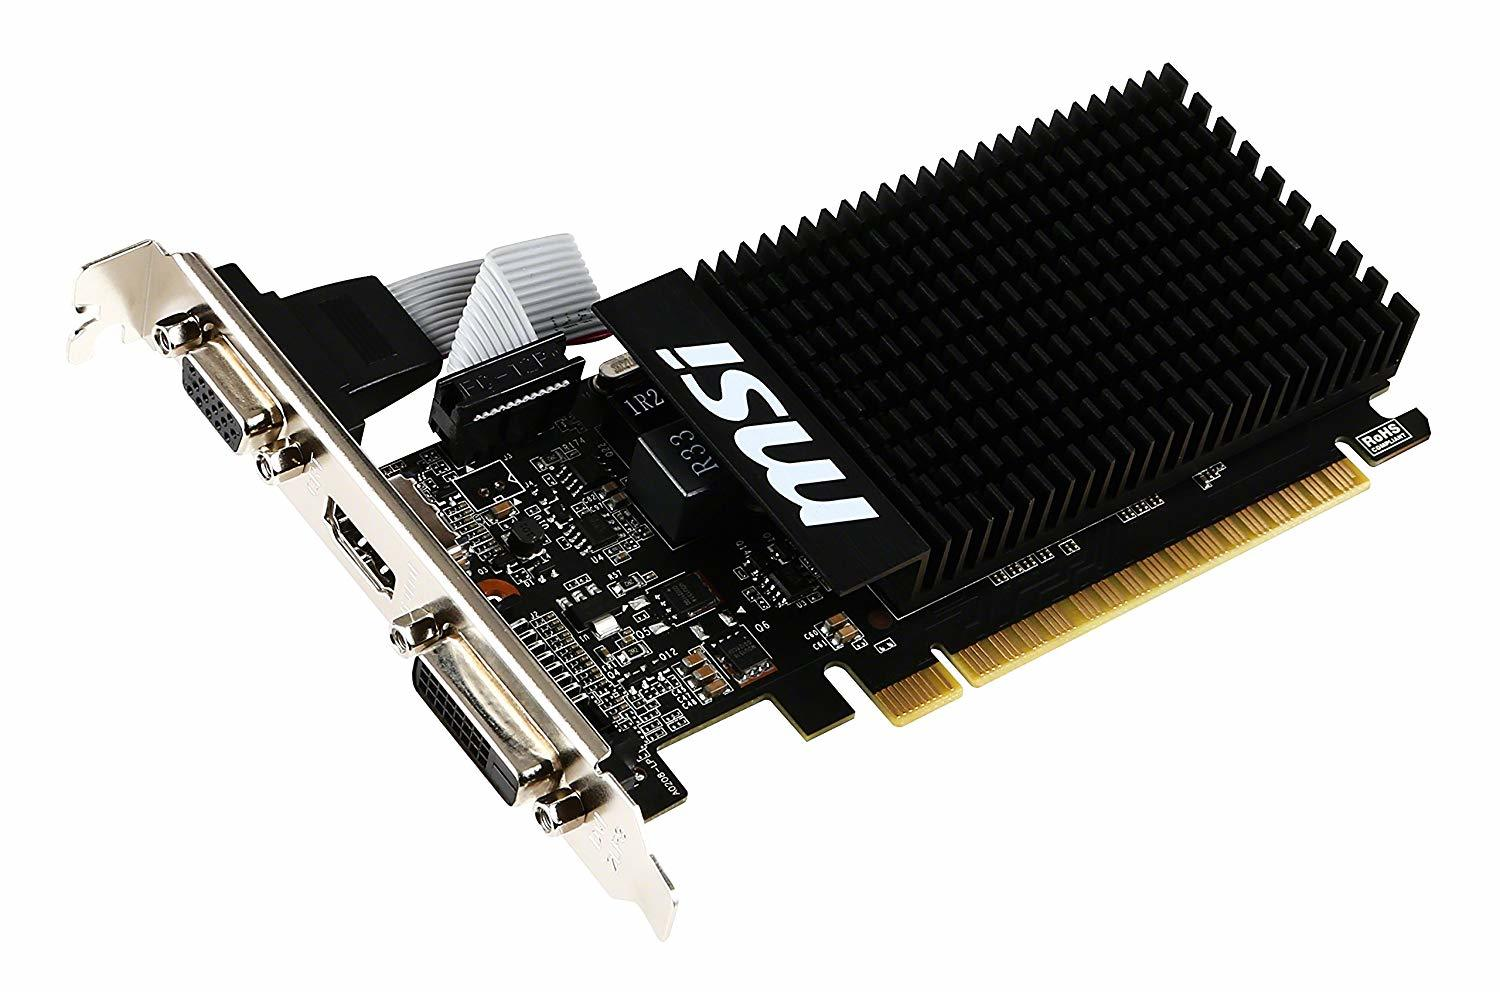 MSI GeForce GT 710 2GB Graphics Card image